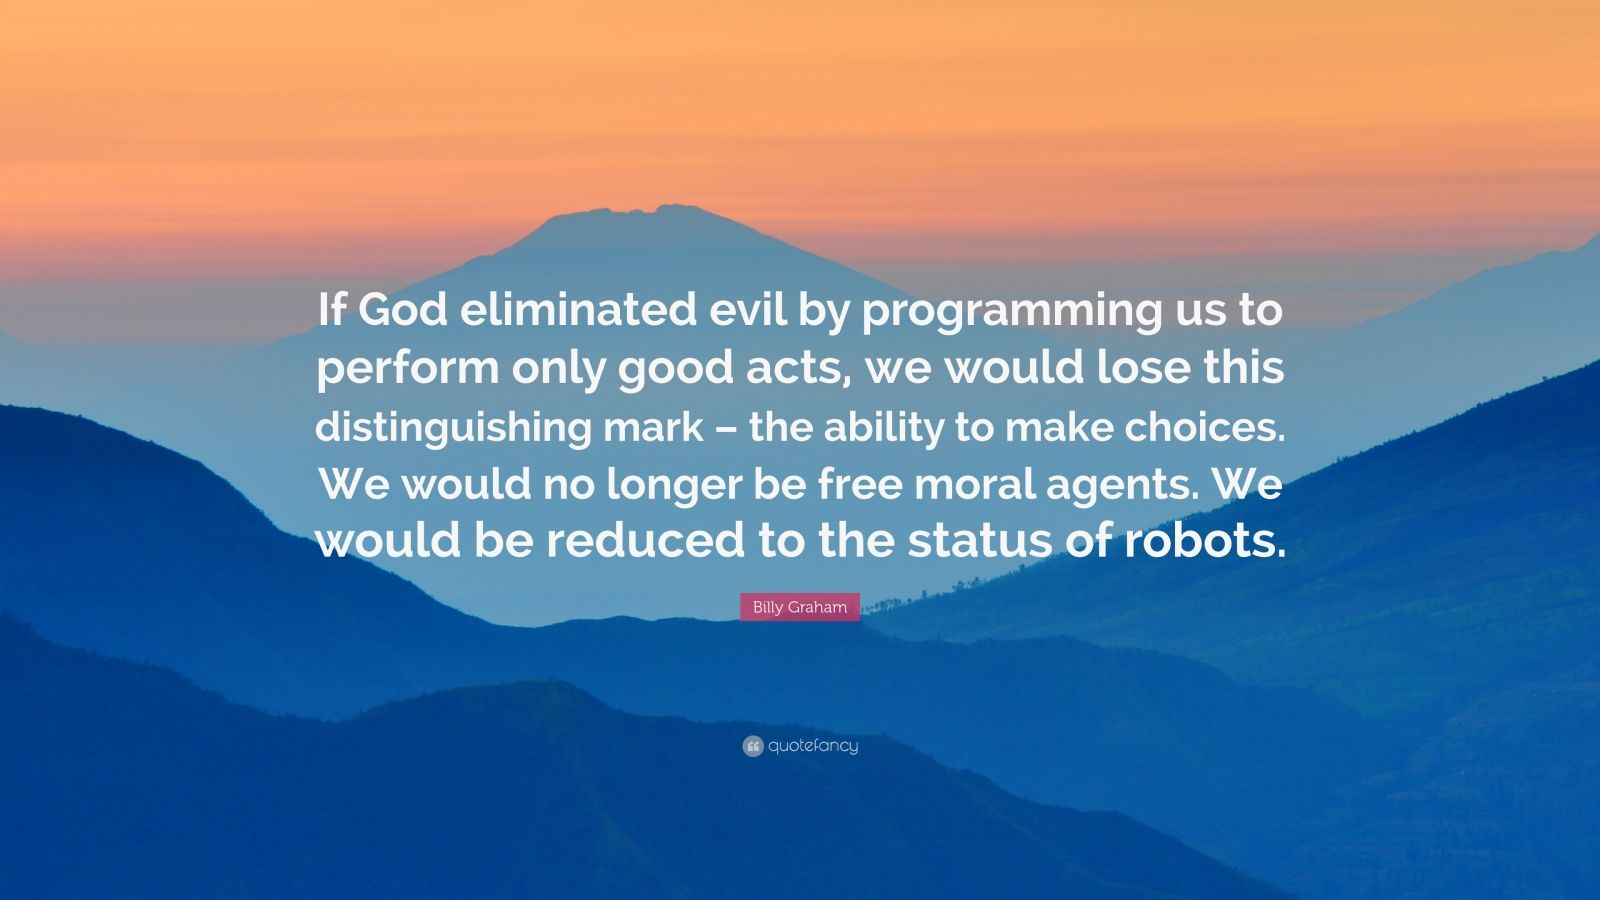 """Billy Graham Quote: """"If God eliminated evil by programming us to perform only good acts, we would lose this distinguishing mark – the ability to make choices. We would no longer be free moral agents. We would be reduced to the status of robots."""""""